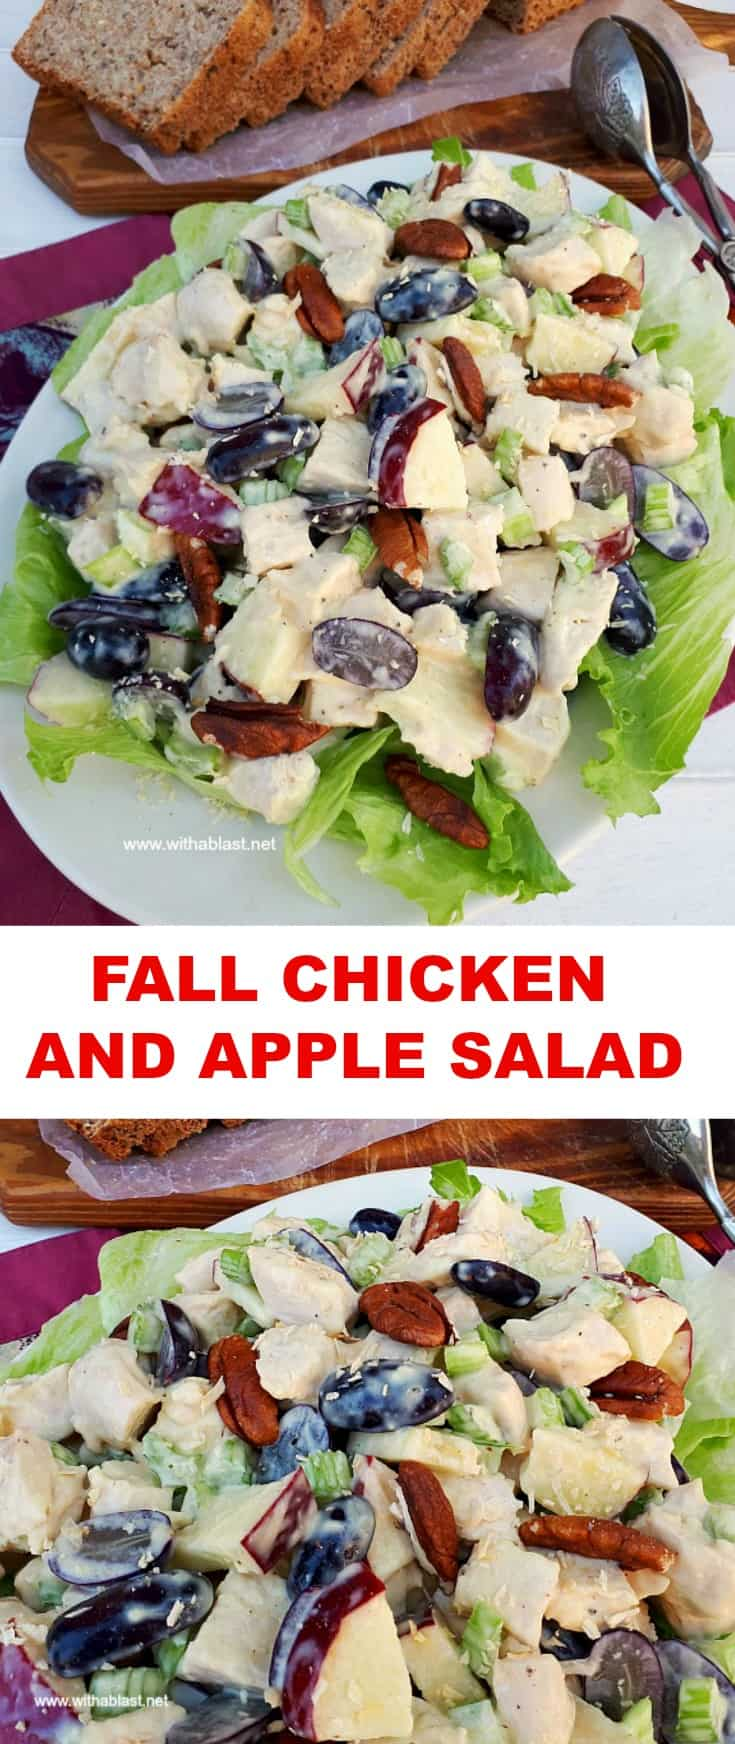 Fall Chicken And Apple Salad is a filling, fruity salad, packed with fruit and perfect to serve as a light dinner or lunch #ChickenSalad #FallSalad #LightDinner #Lunch